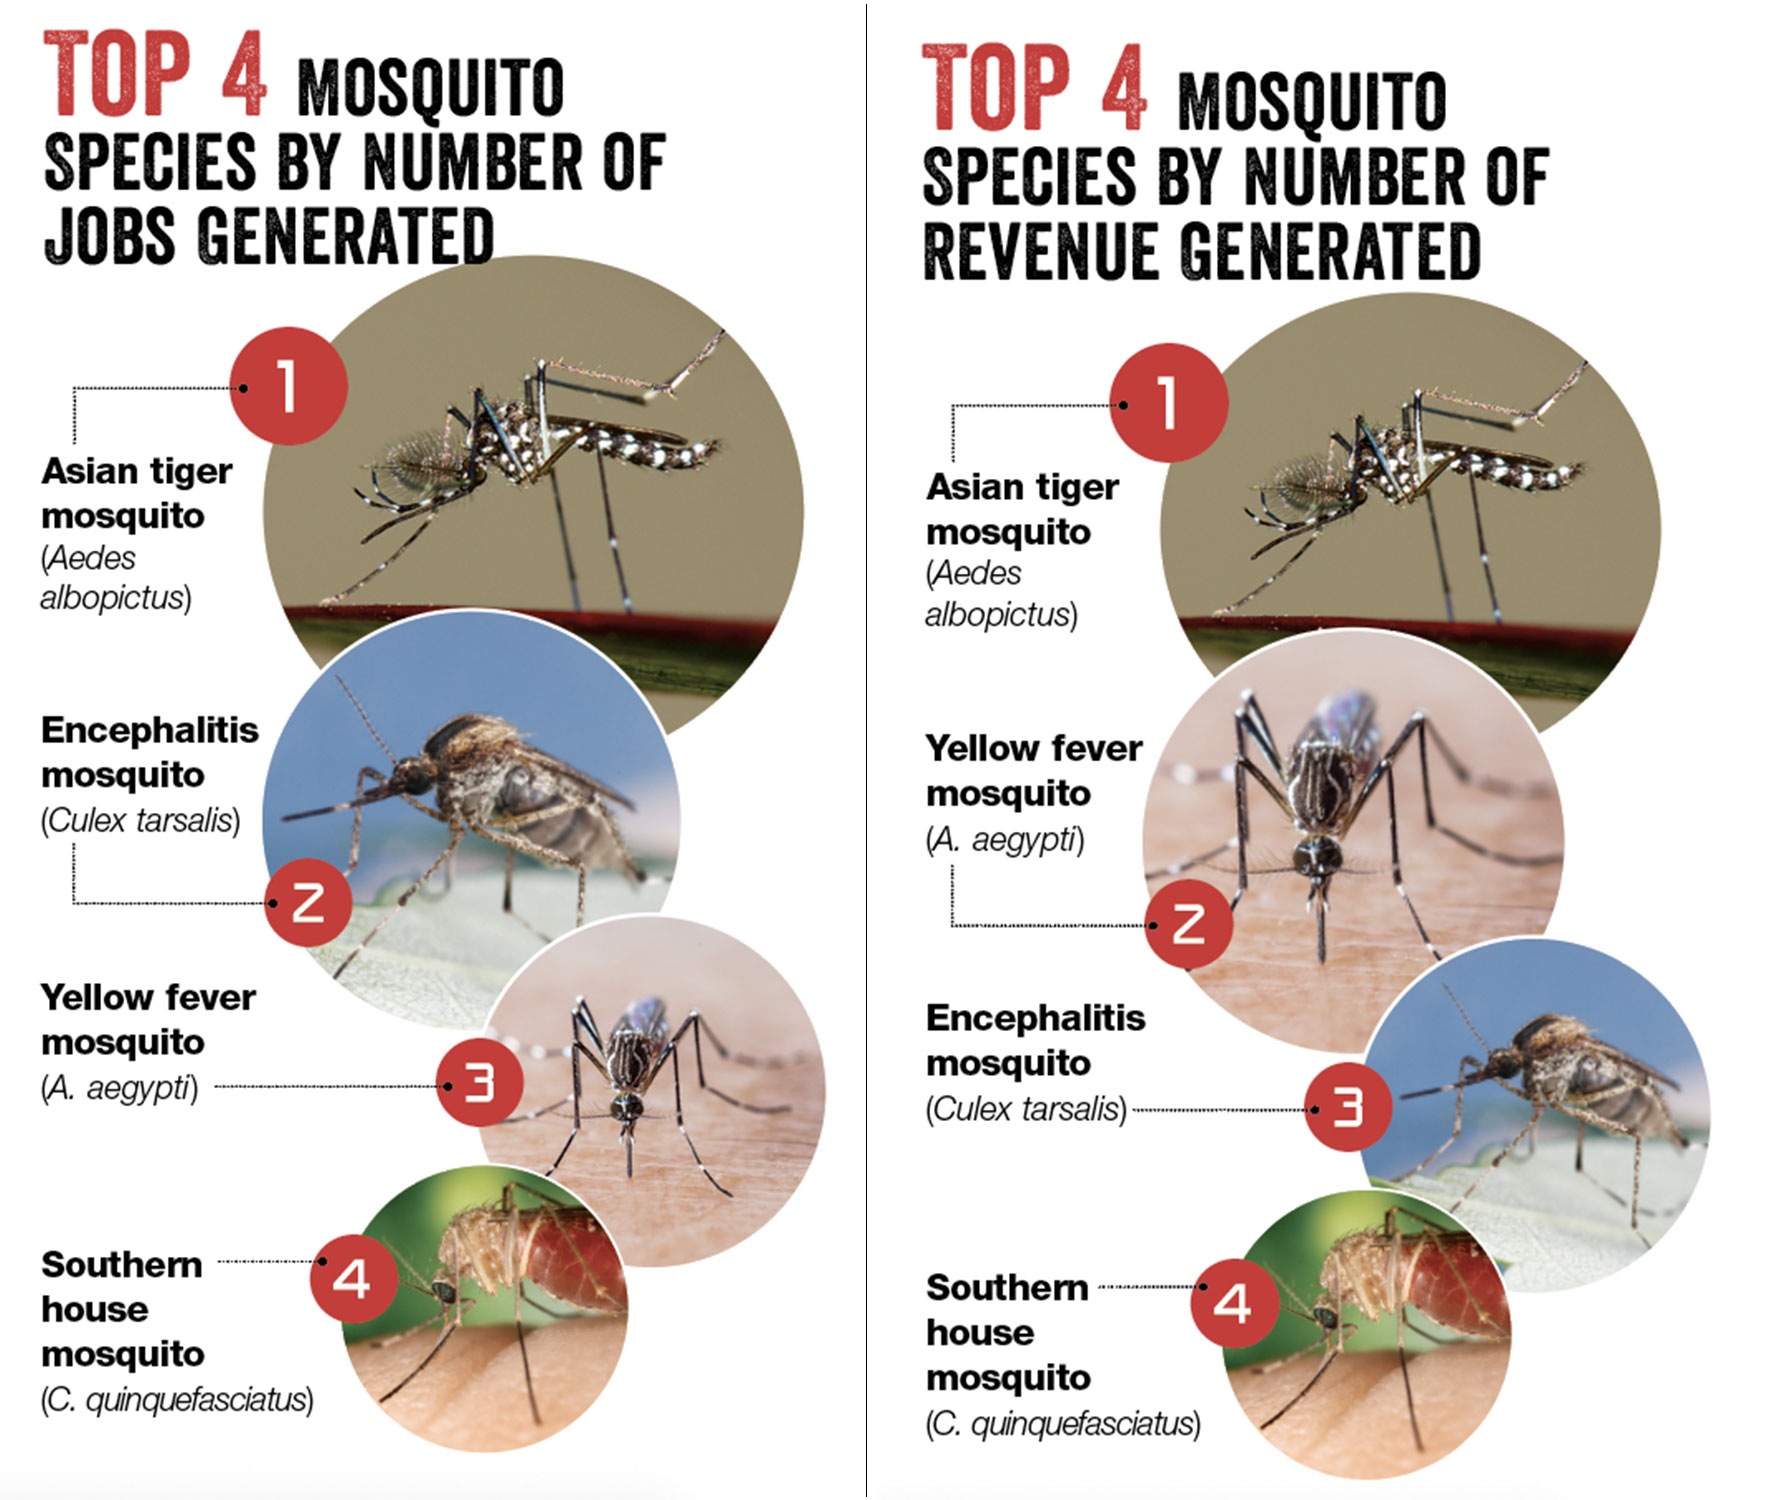 (PHOTOS: ISTOCK.COM/IMNATURE, TEPTONG; JOSEPH BURGER, BUGWOOD.ORG; CDC/JIM GATHANY) SOURCE: PMP Mosquito Management Survey Jan.-March 2019